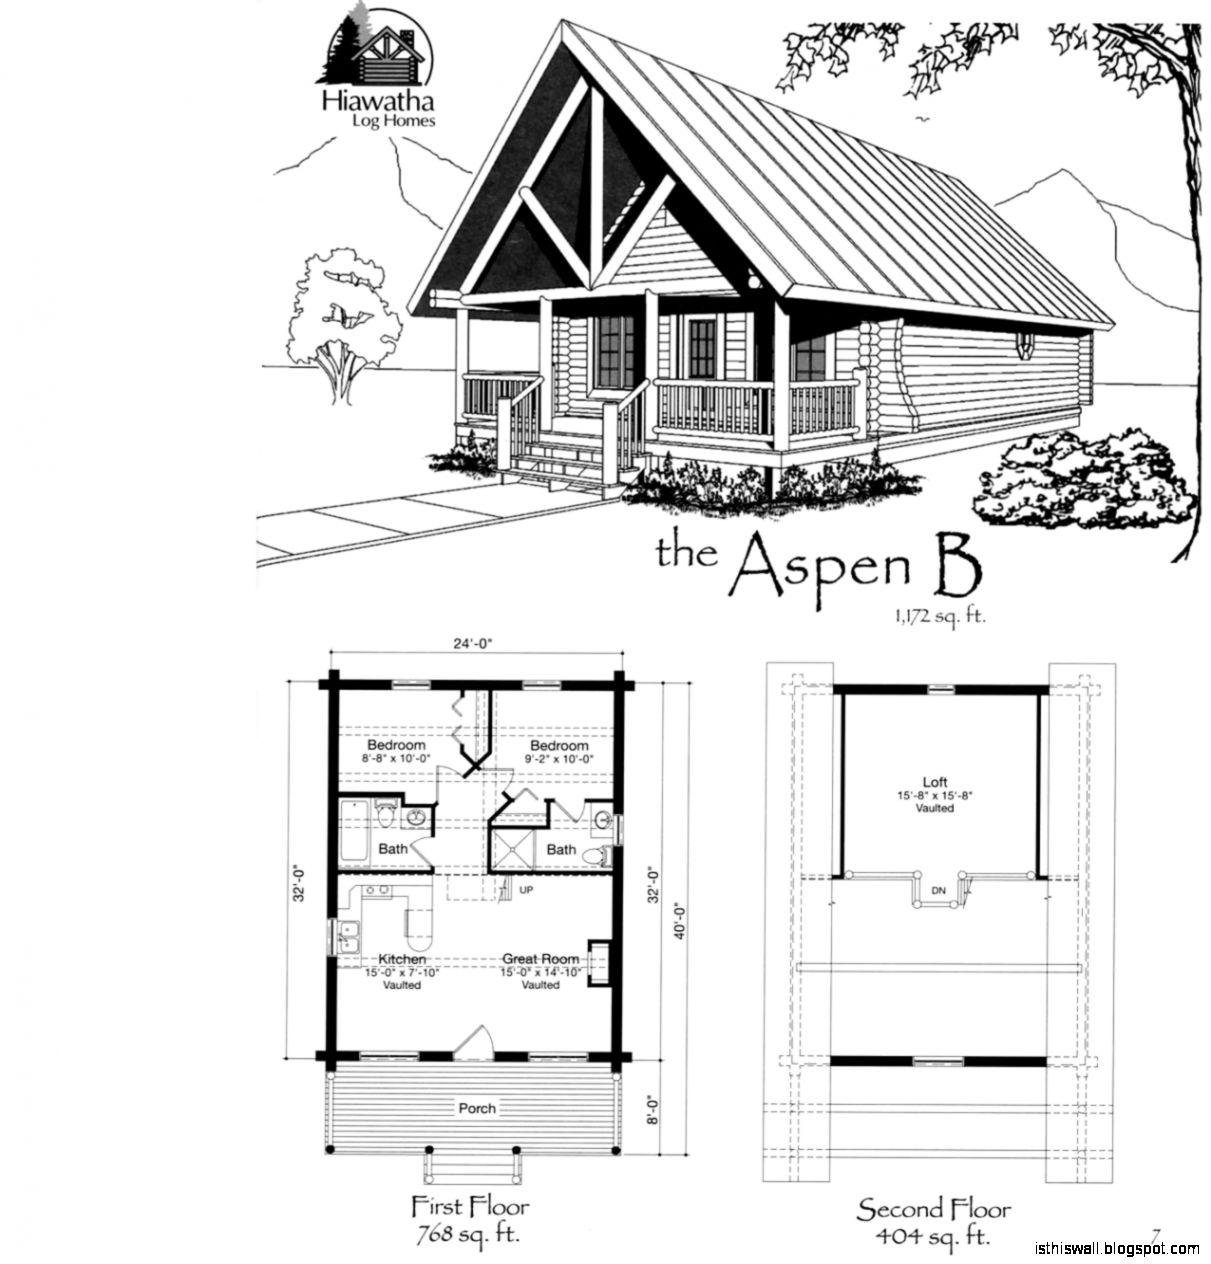 Log cabin home design plans this wallpapers for Log cabin blueprints free